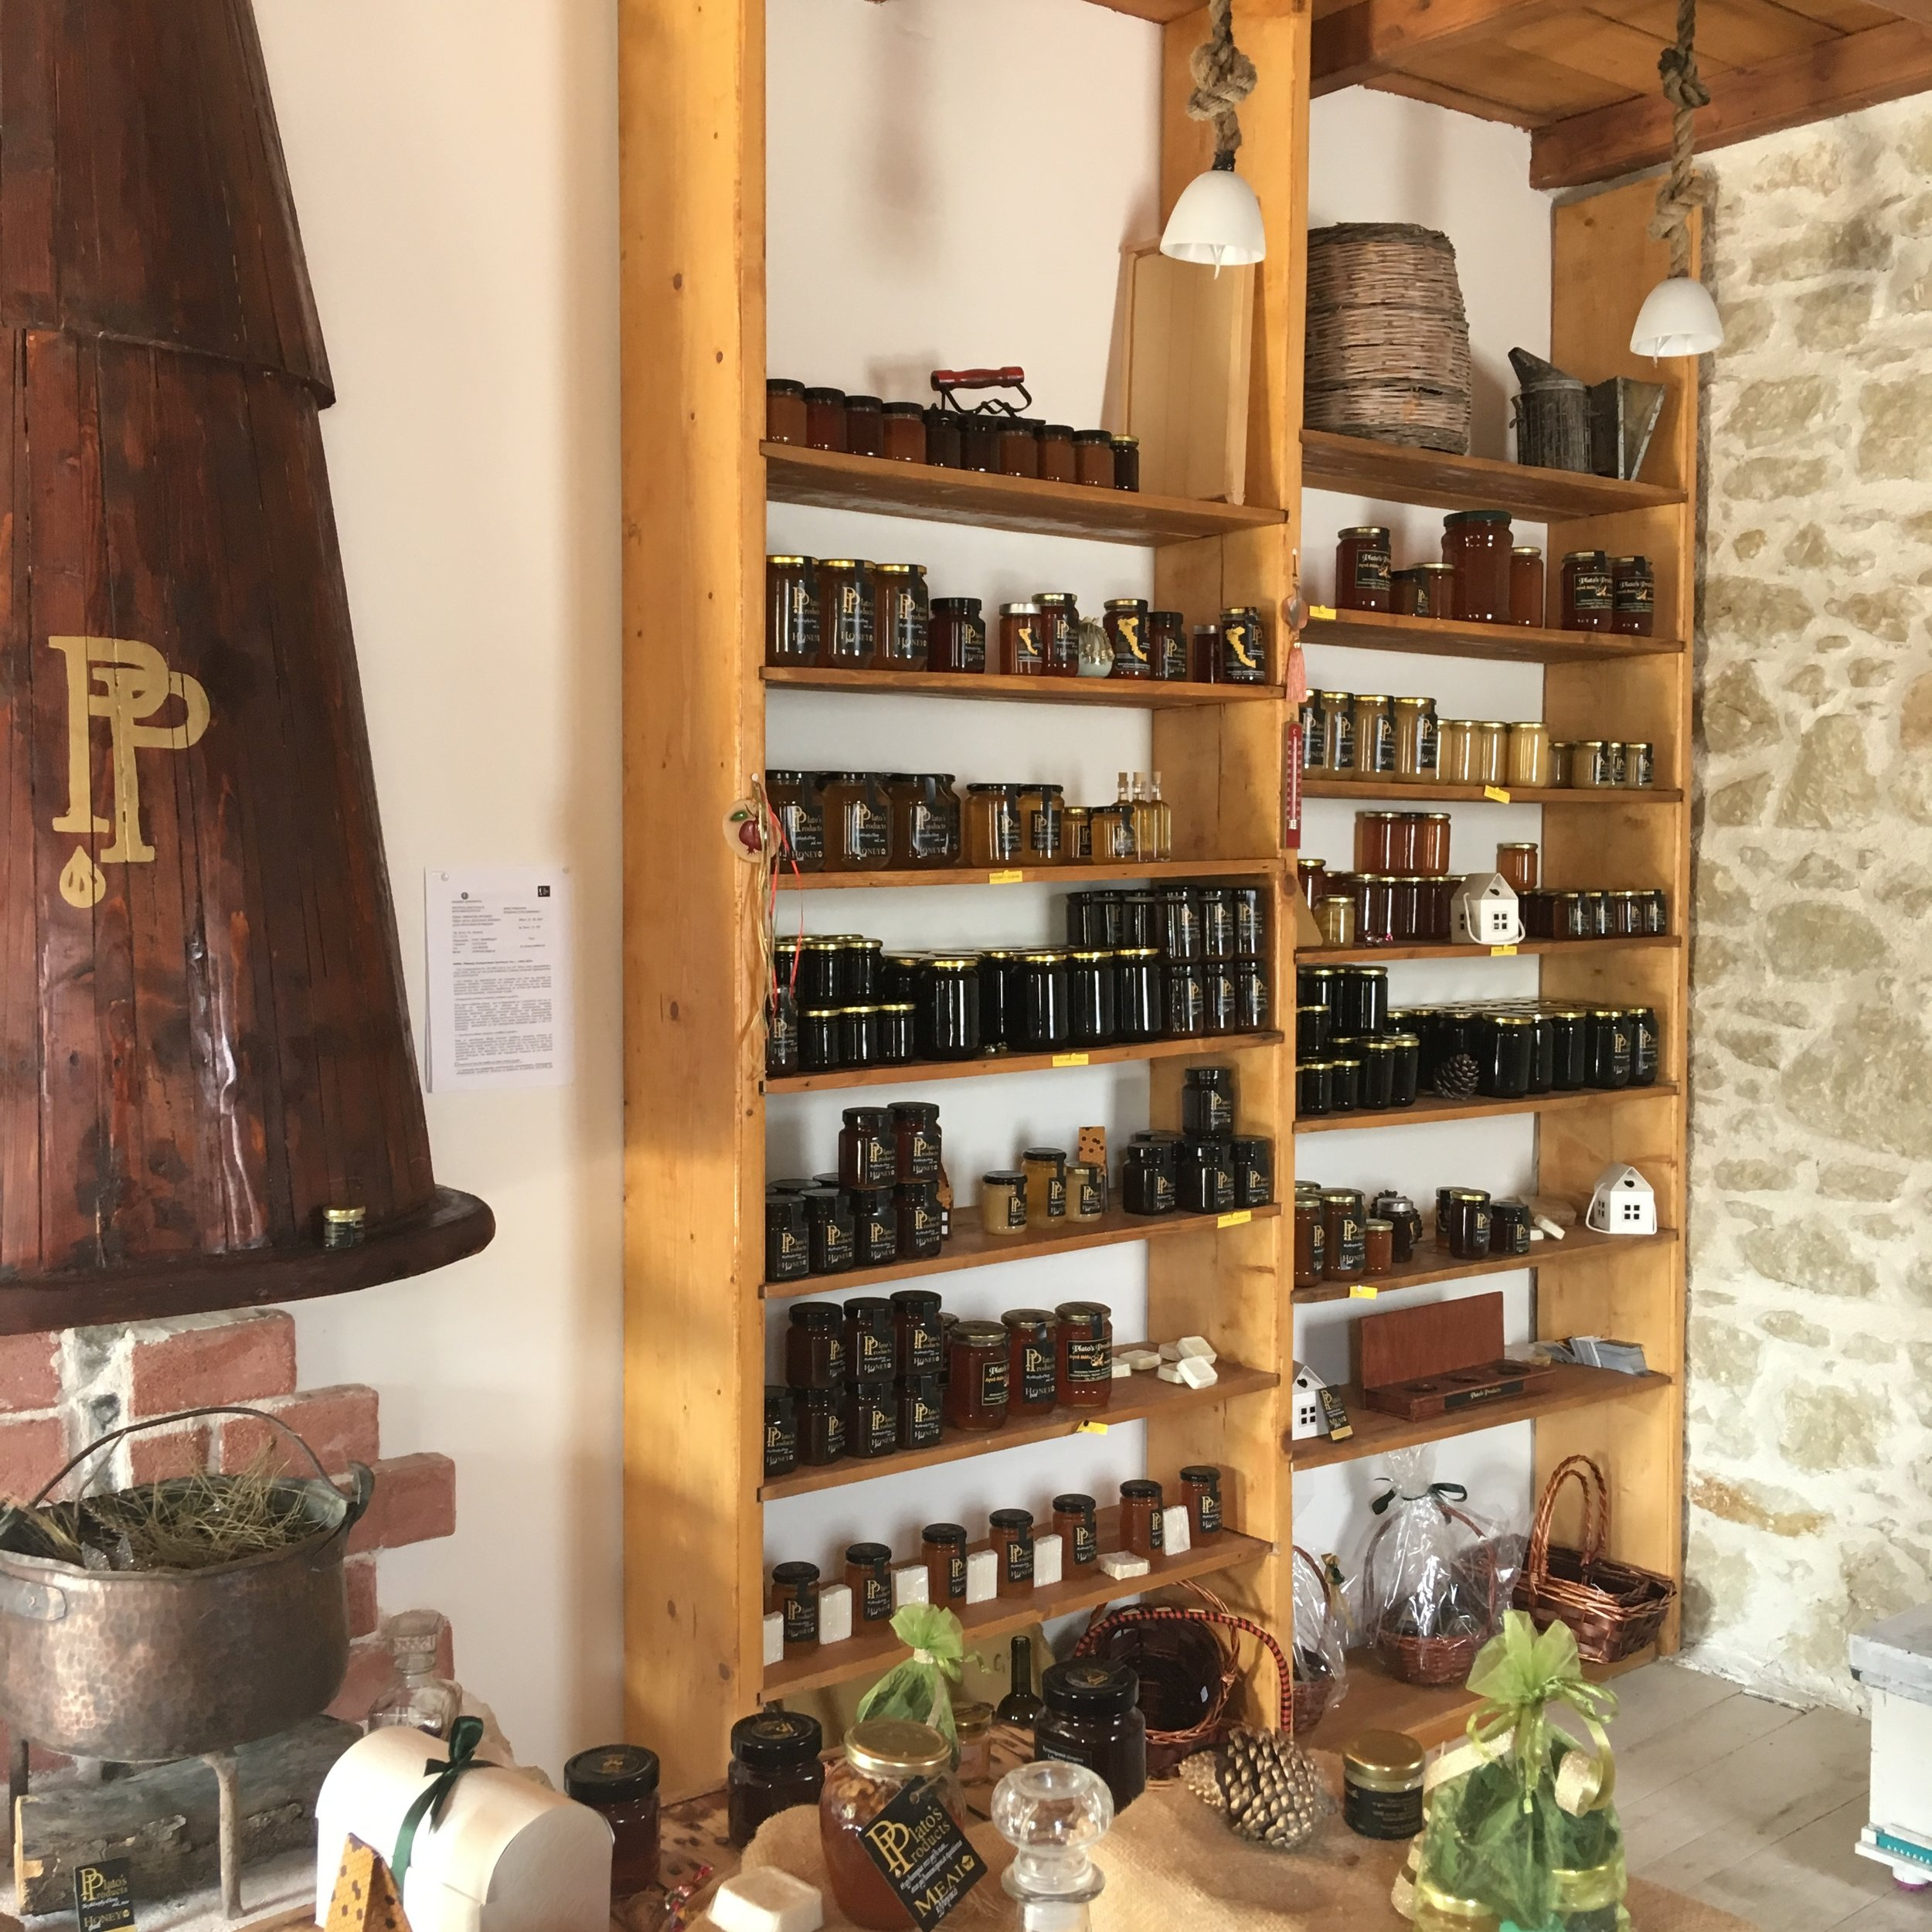 Honey-lovers, look away…unless you're planning a trip to northern Corfu. Some of the many varieties of honey produced by Plato's Products. I can vouch for their quality!